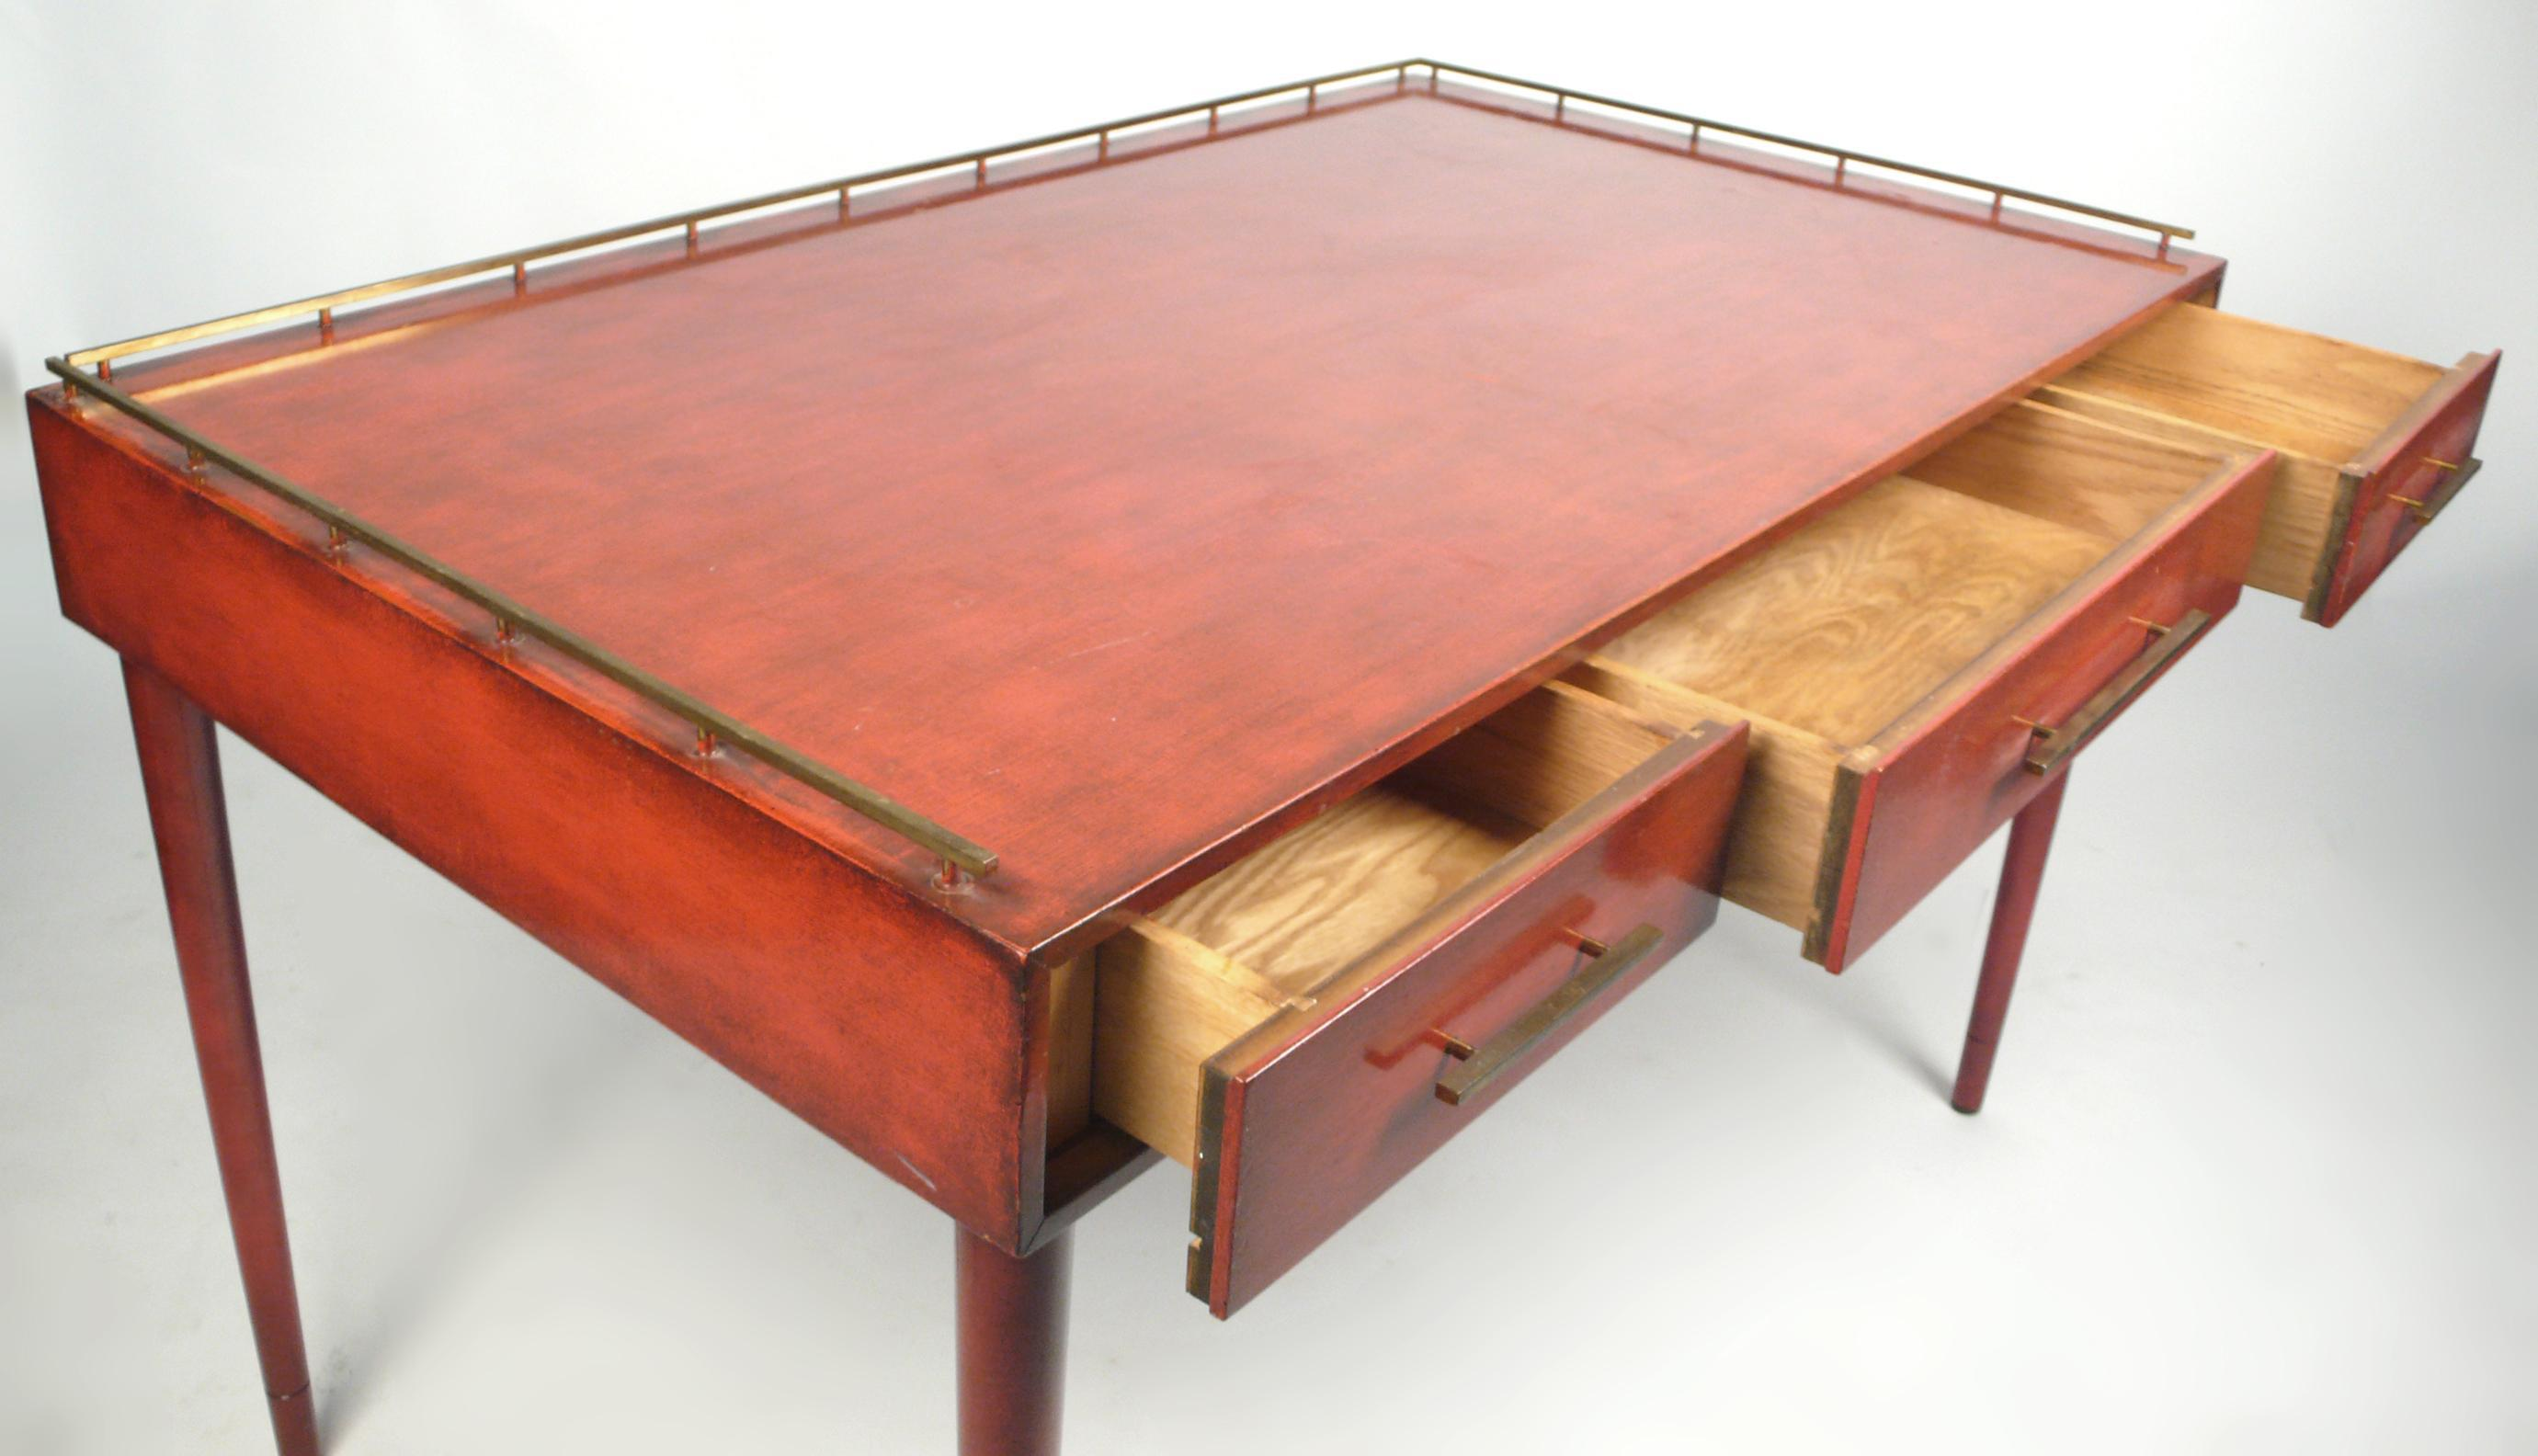 Unique Three-Drawer Writing Desk by Imperial | 20c Design